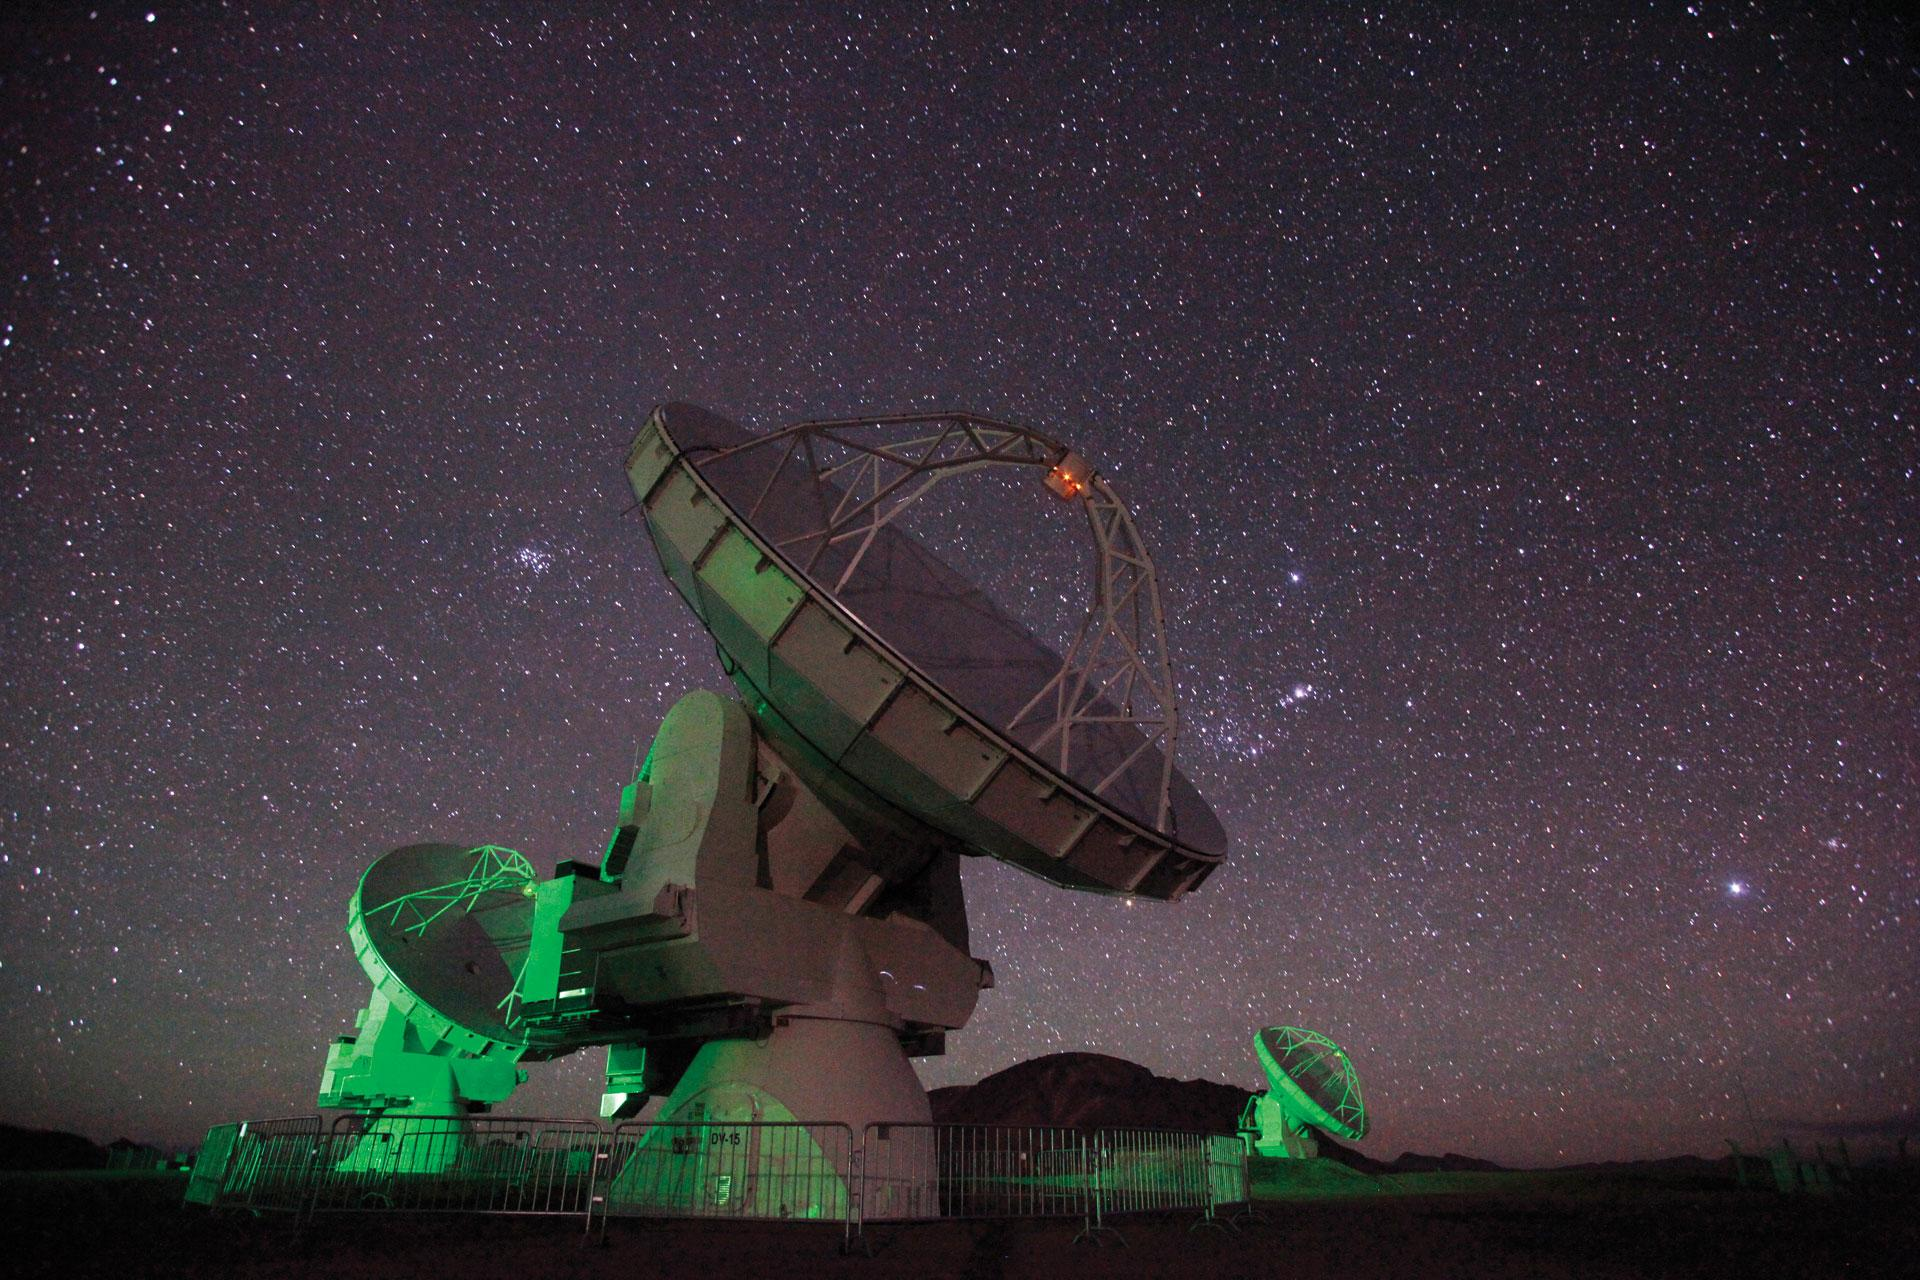 For their study, astronomers used a powerful radio astronomy observatory in Chile called ALMA – the Atacama Large Millimeter/submillimeter Array, which allows observations through thick clouded regions of the universe. (Photo courtesy ALMA/AUI/NSF)